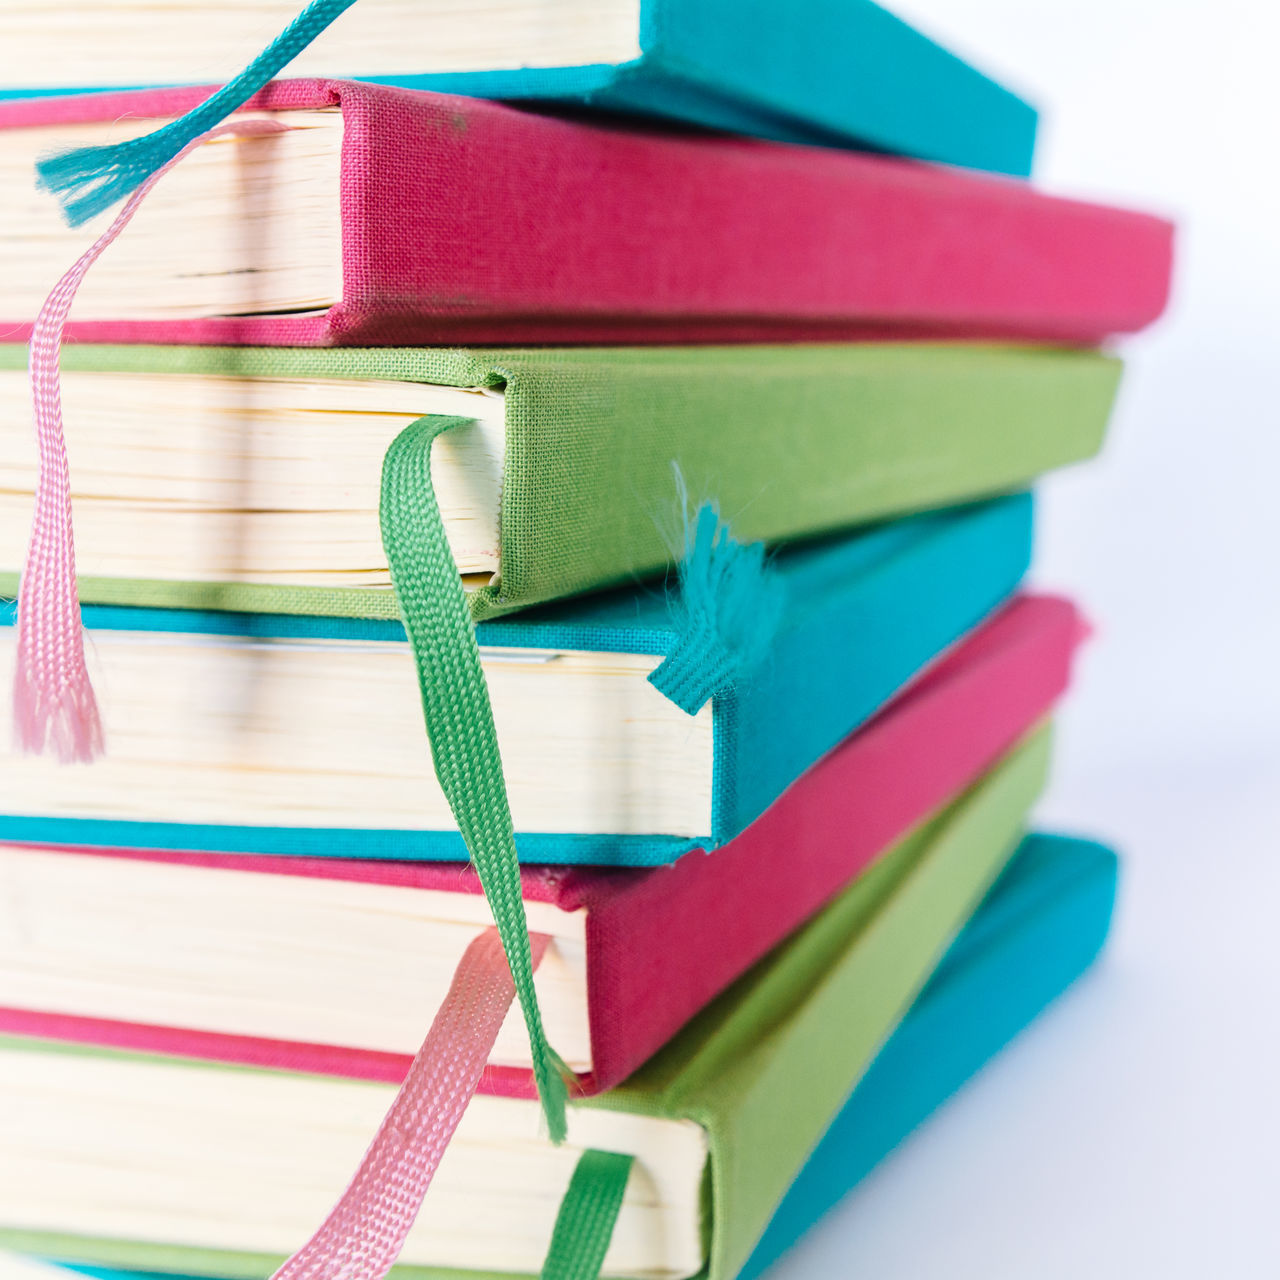 Colorful Books Blue Books Close-up Colorful Colors Cyan Education Educational Green Green Color Group Of Objects Learning LearningEveryday No People Pink Pink Color Reading Reading Books Reading Time Study Hard Study Time Studying White Background